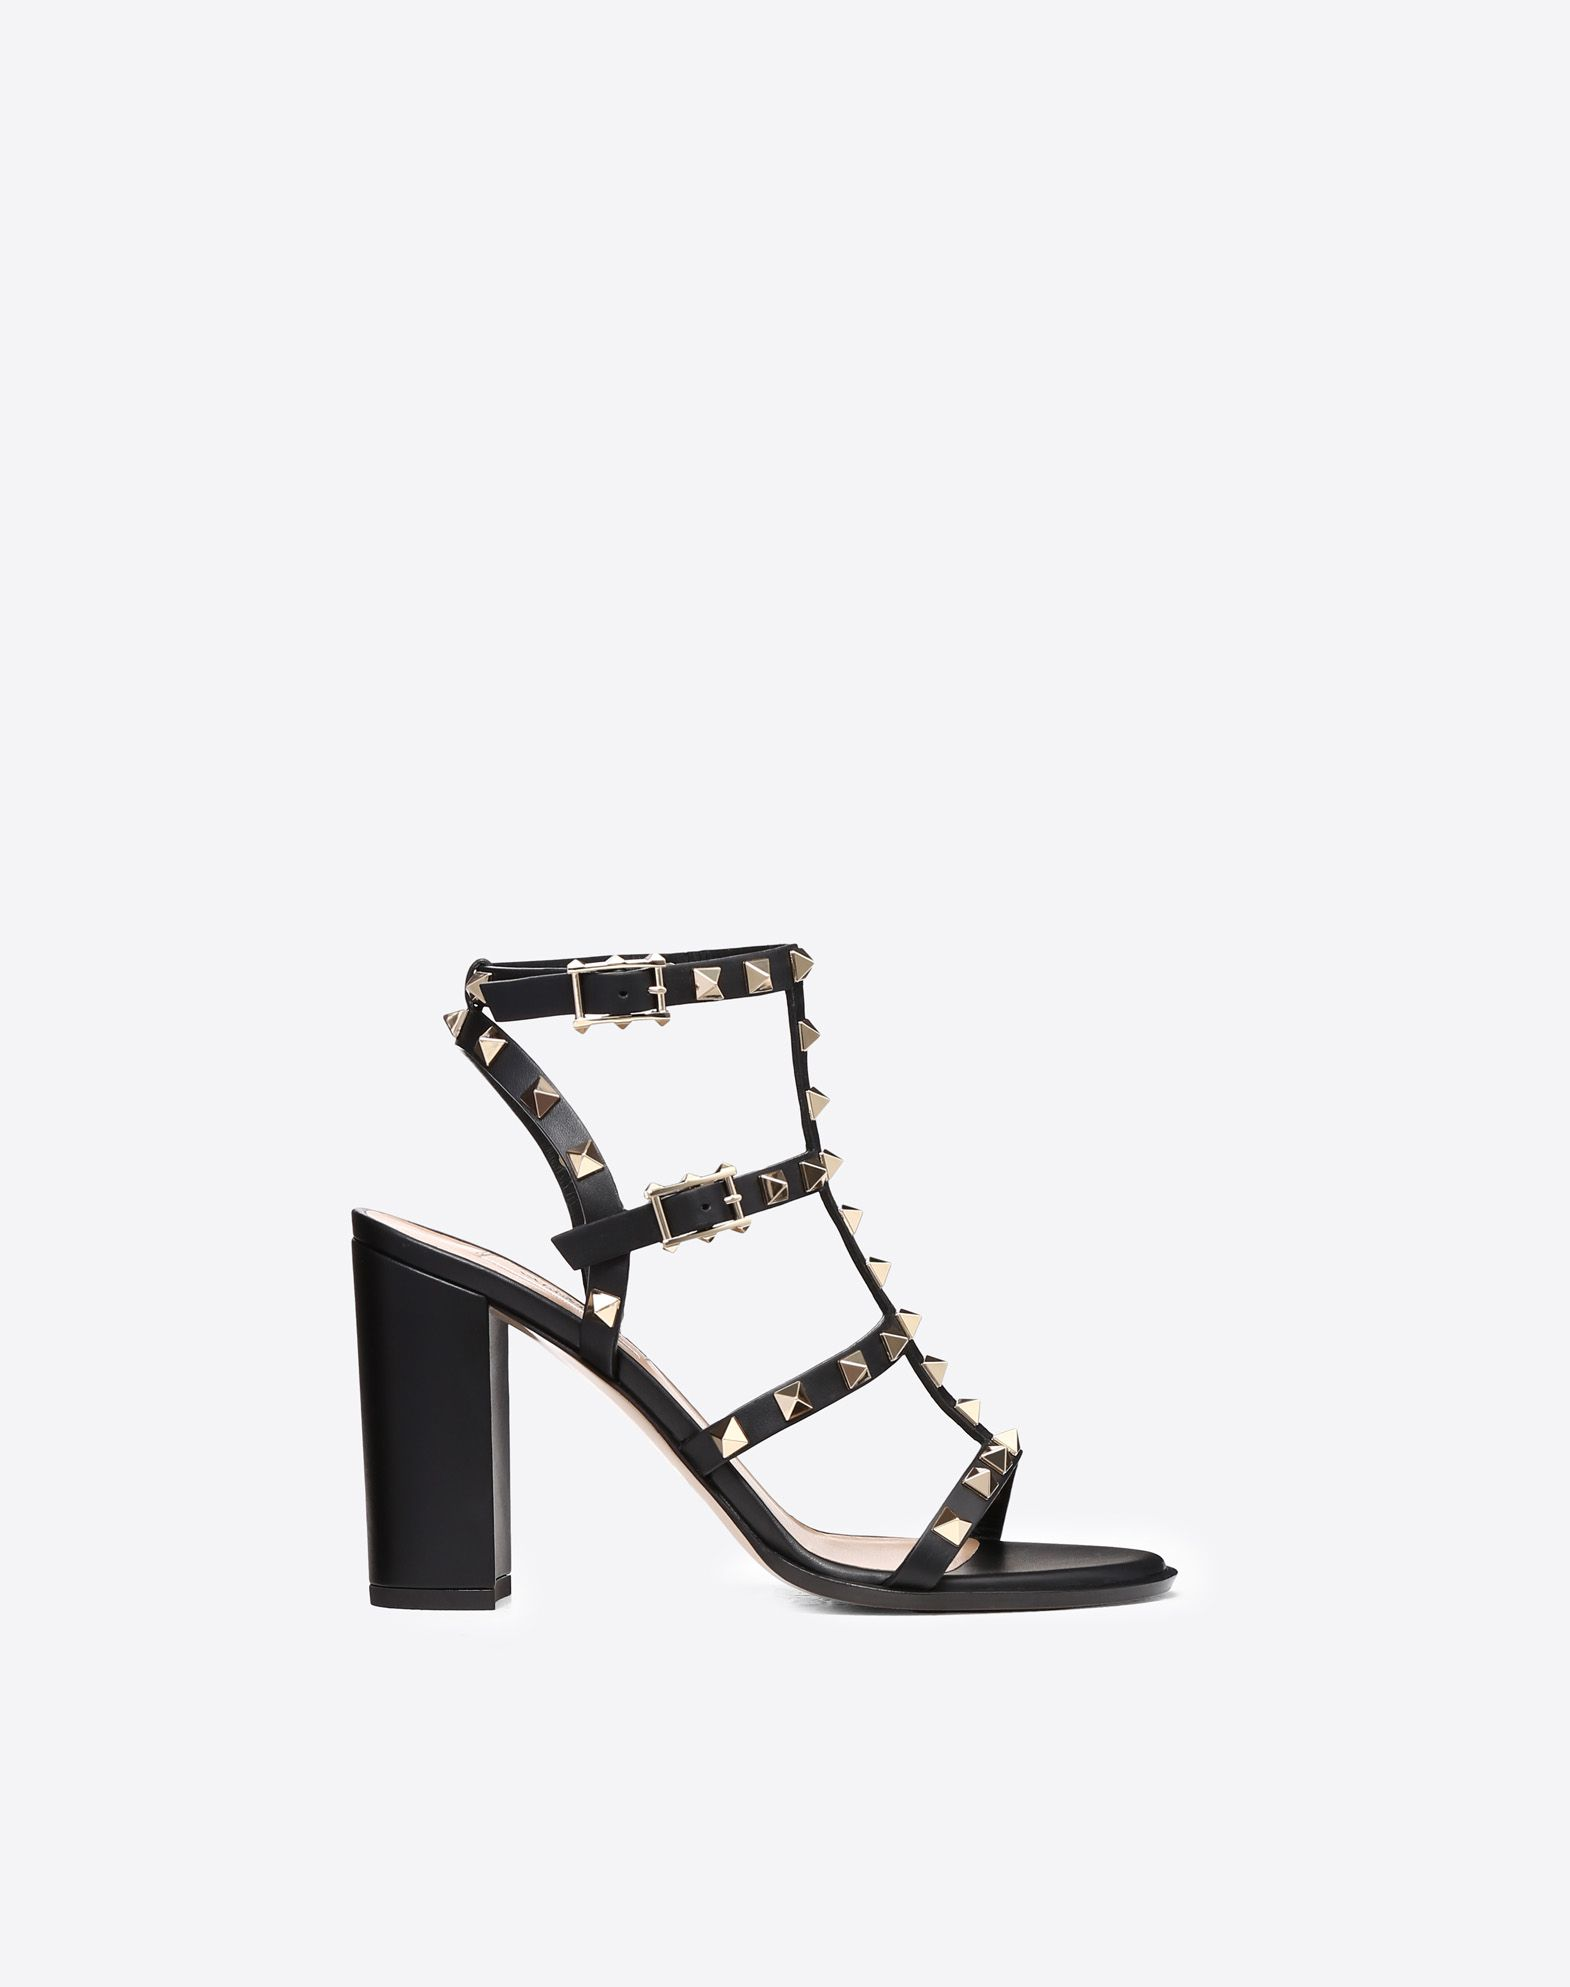 VALENTINO Studs Solid colour Leather sole Buckle  45399357hk